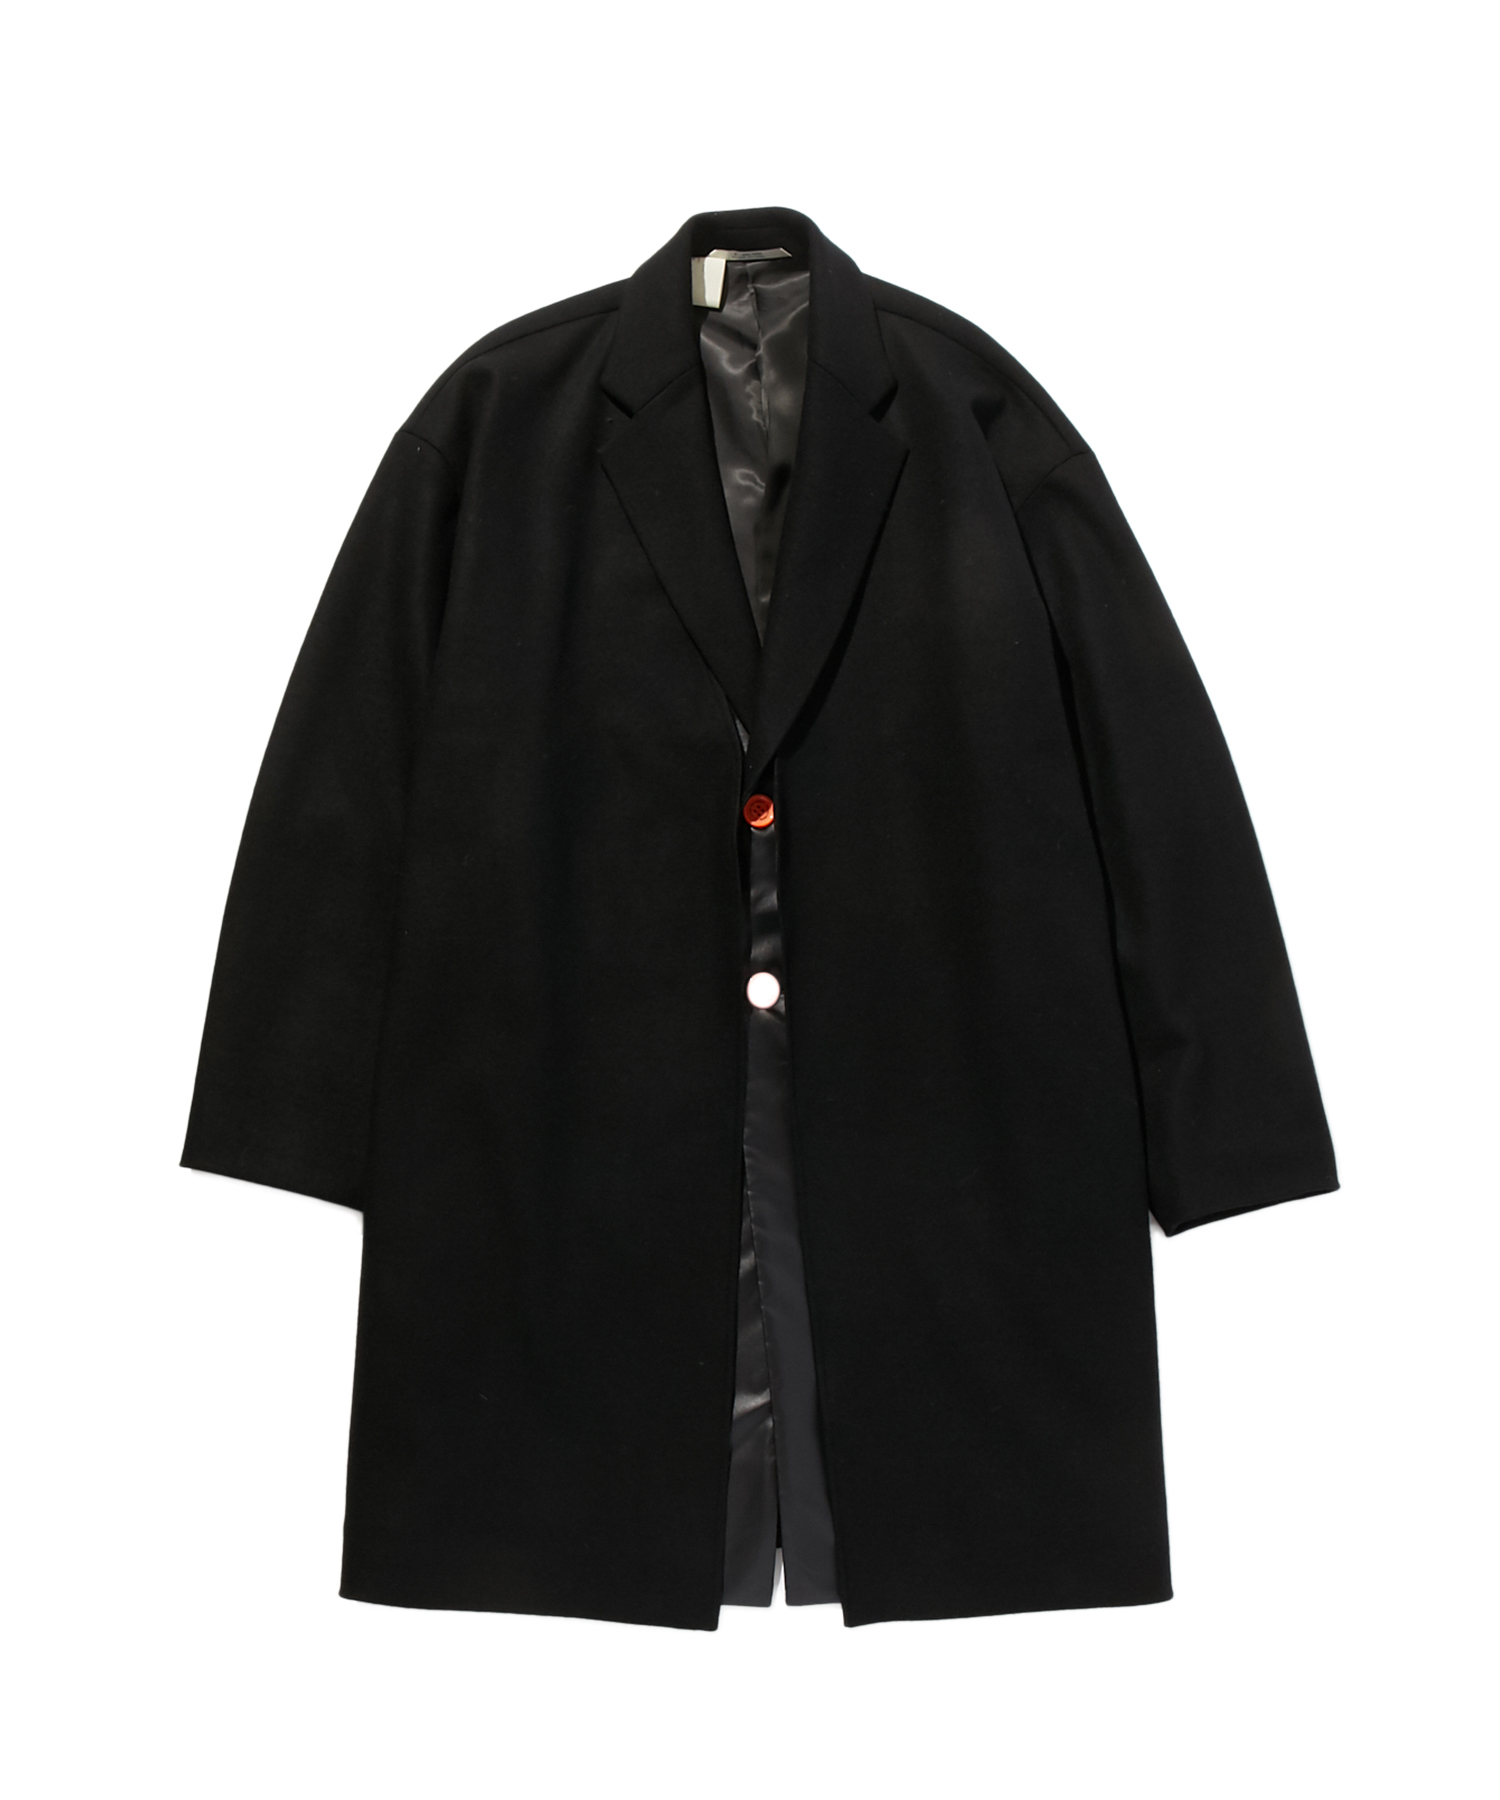 FALL2019 CHESTER FIELD COAT